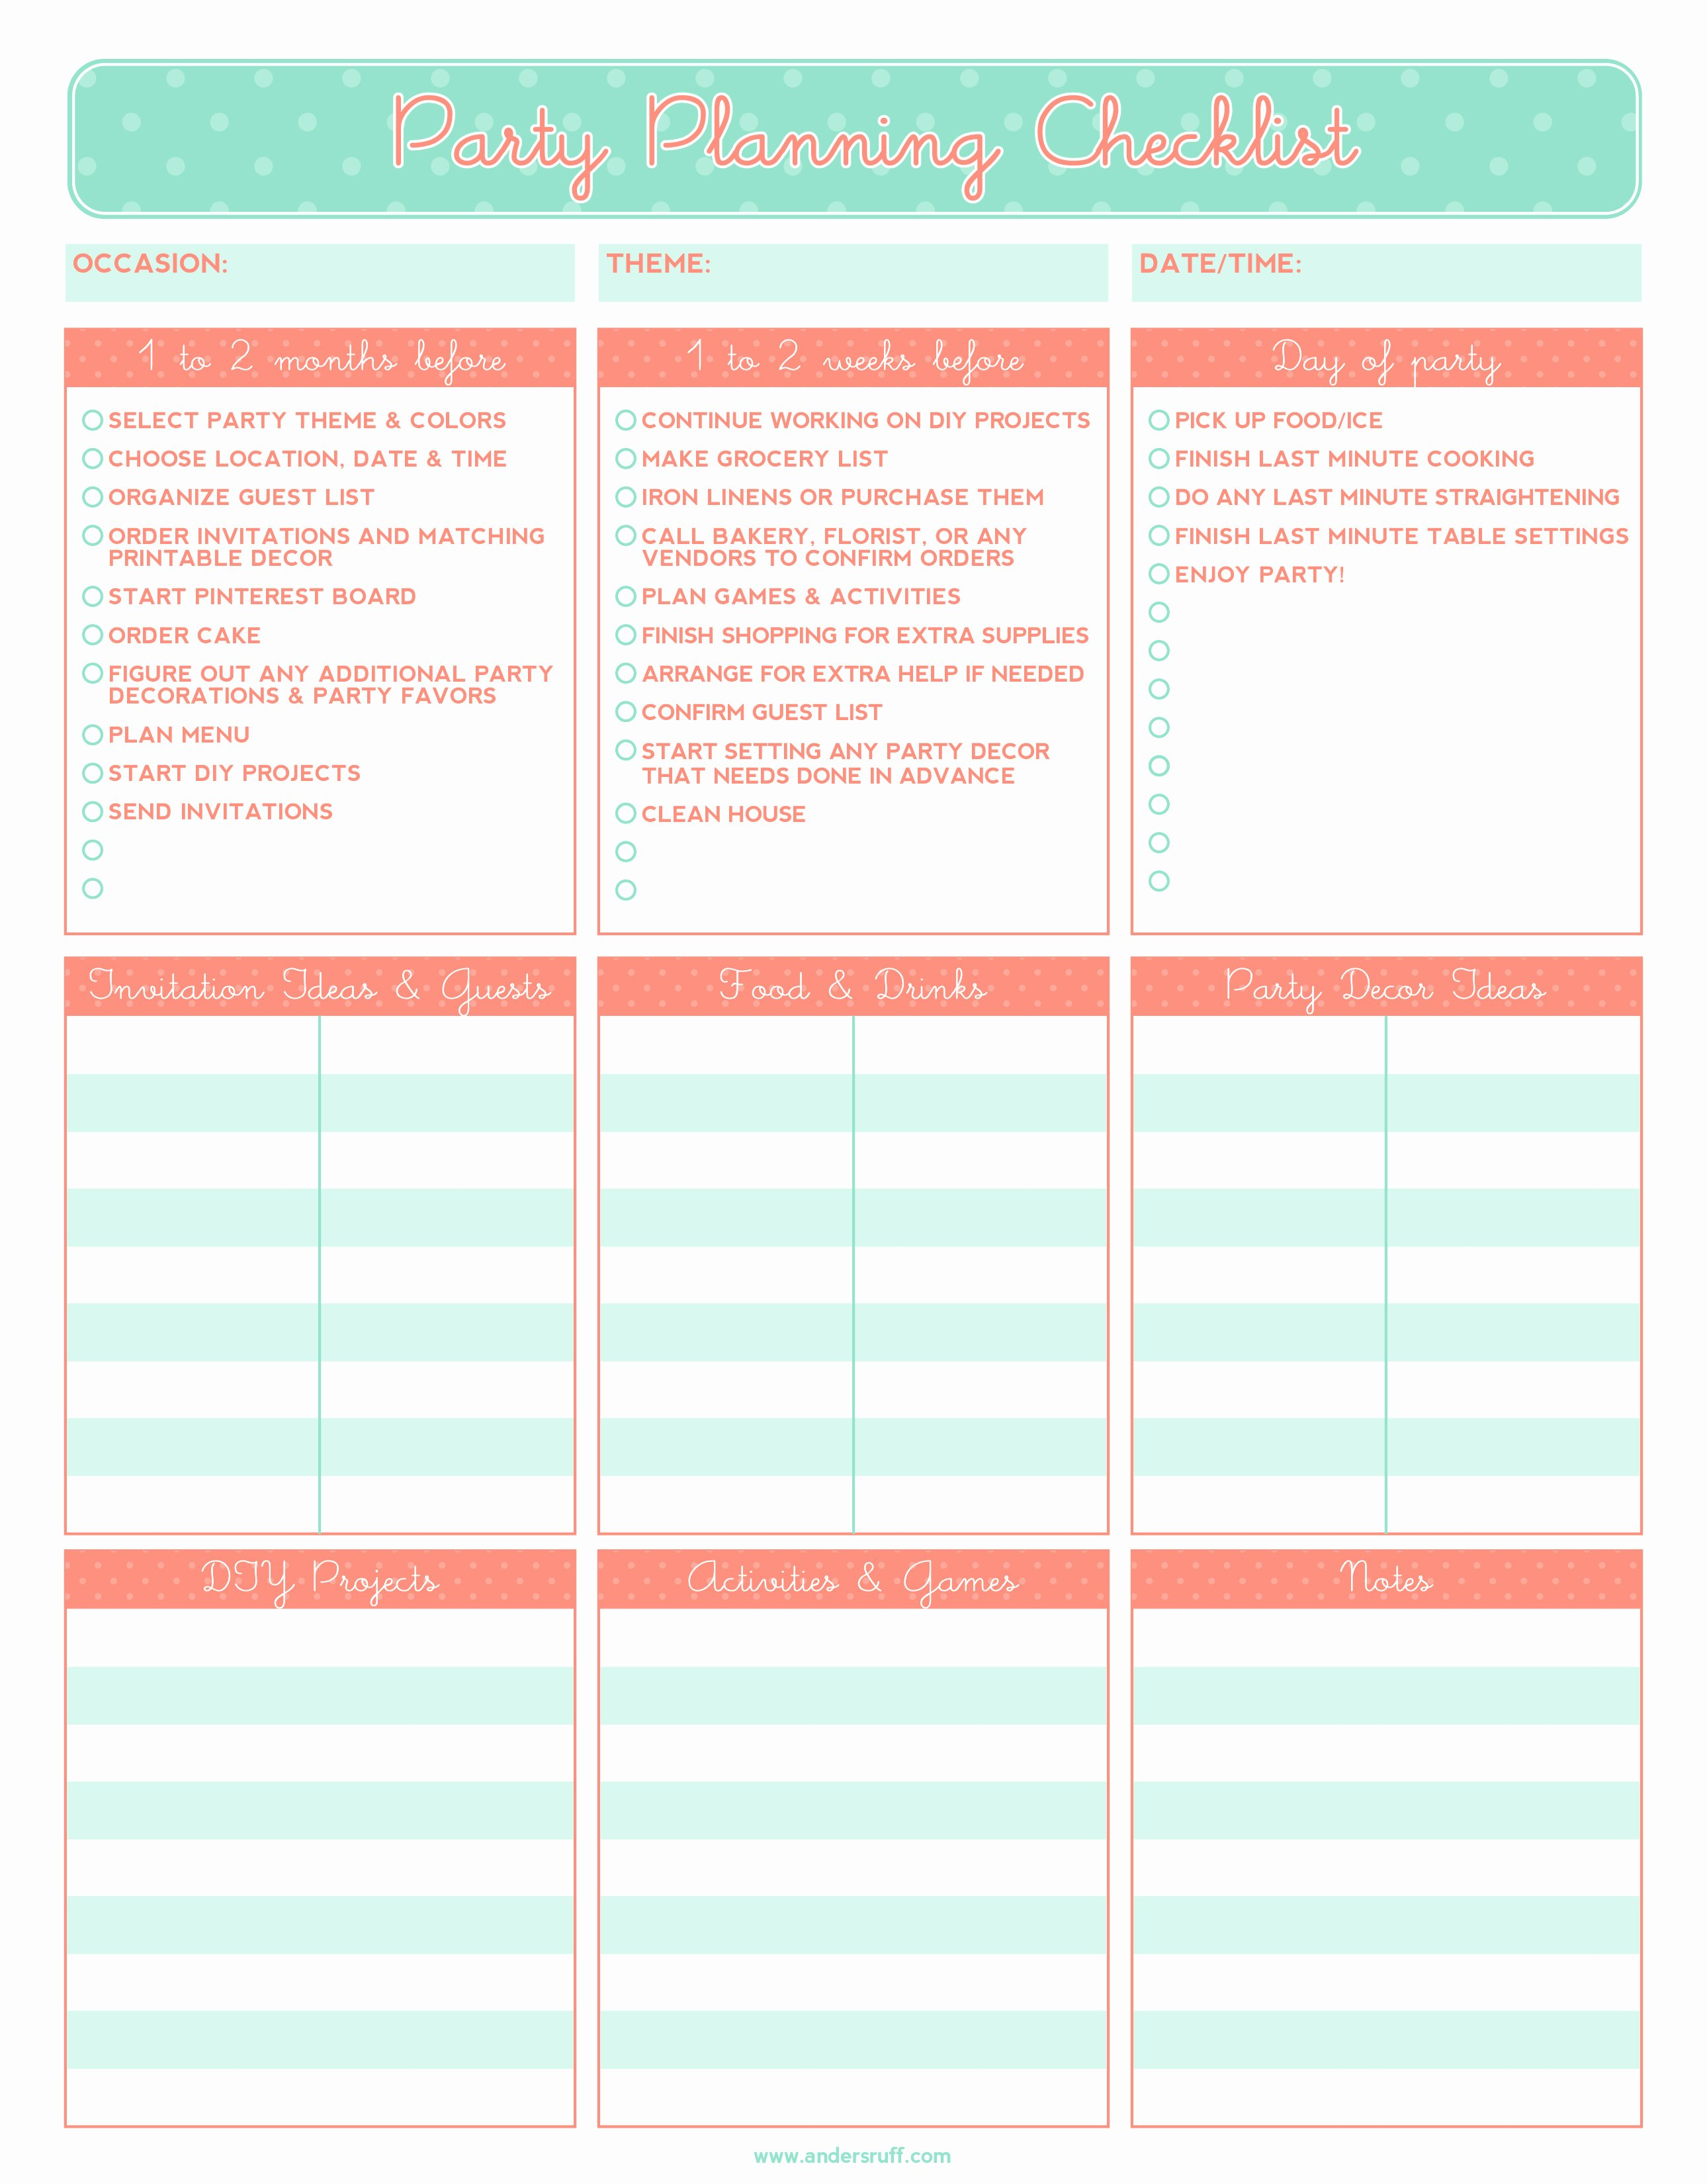 Event Planning Schedule Template Beautiful 5 Party Planning Templates Excel Xlts